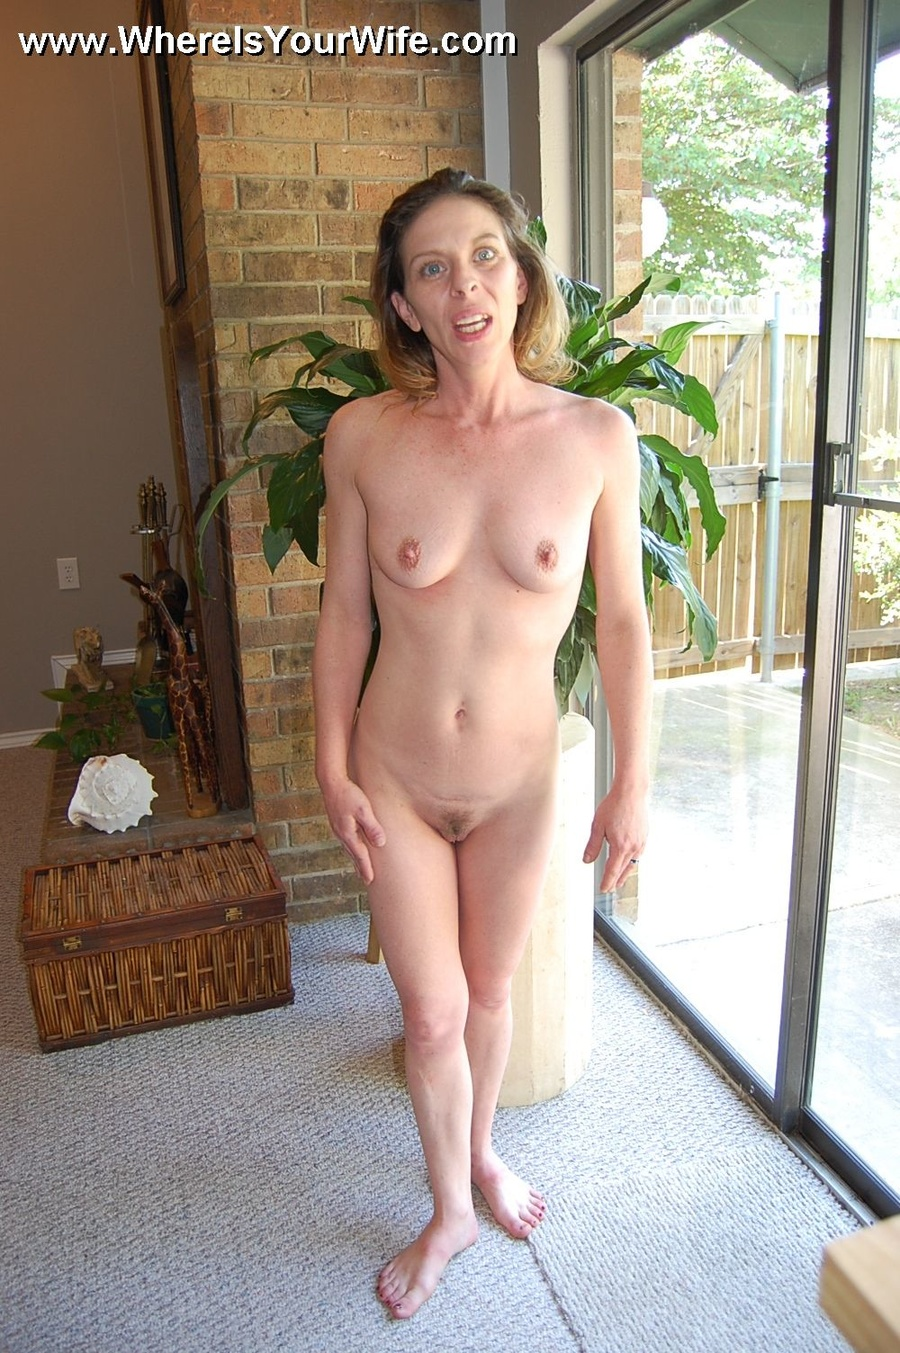 Wife strips nude